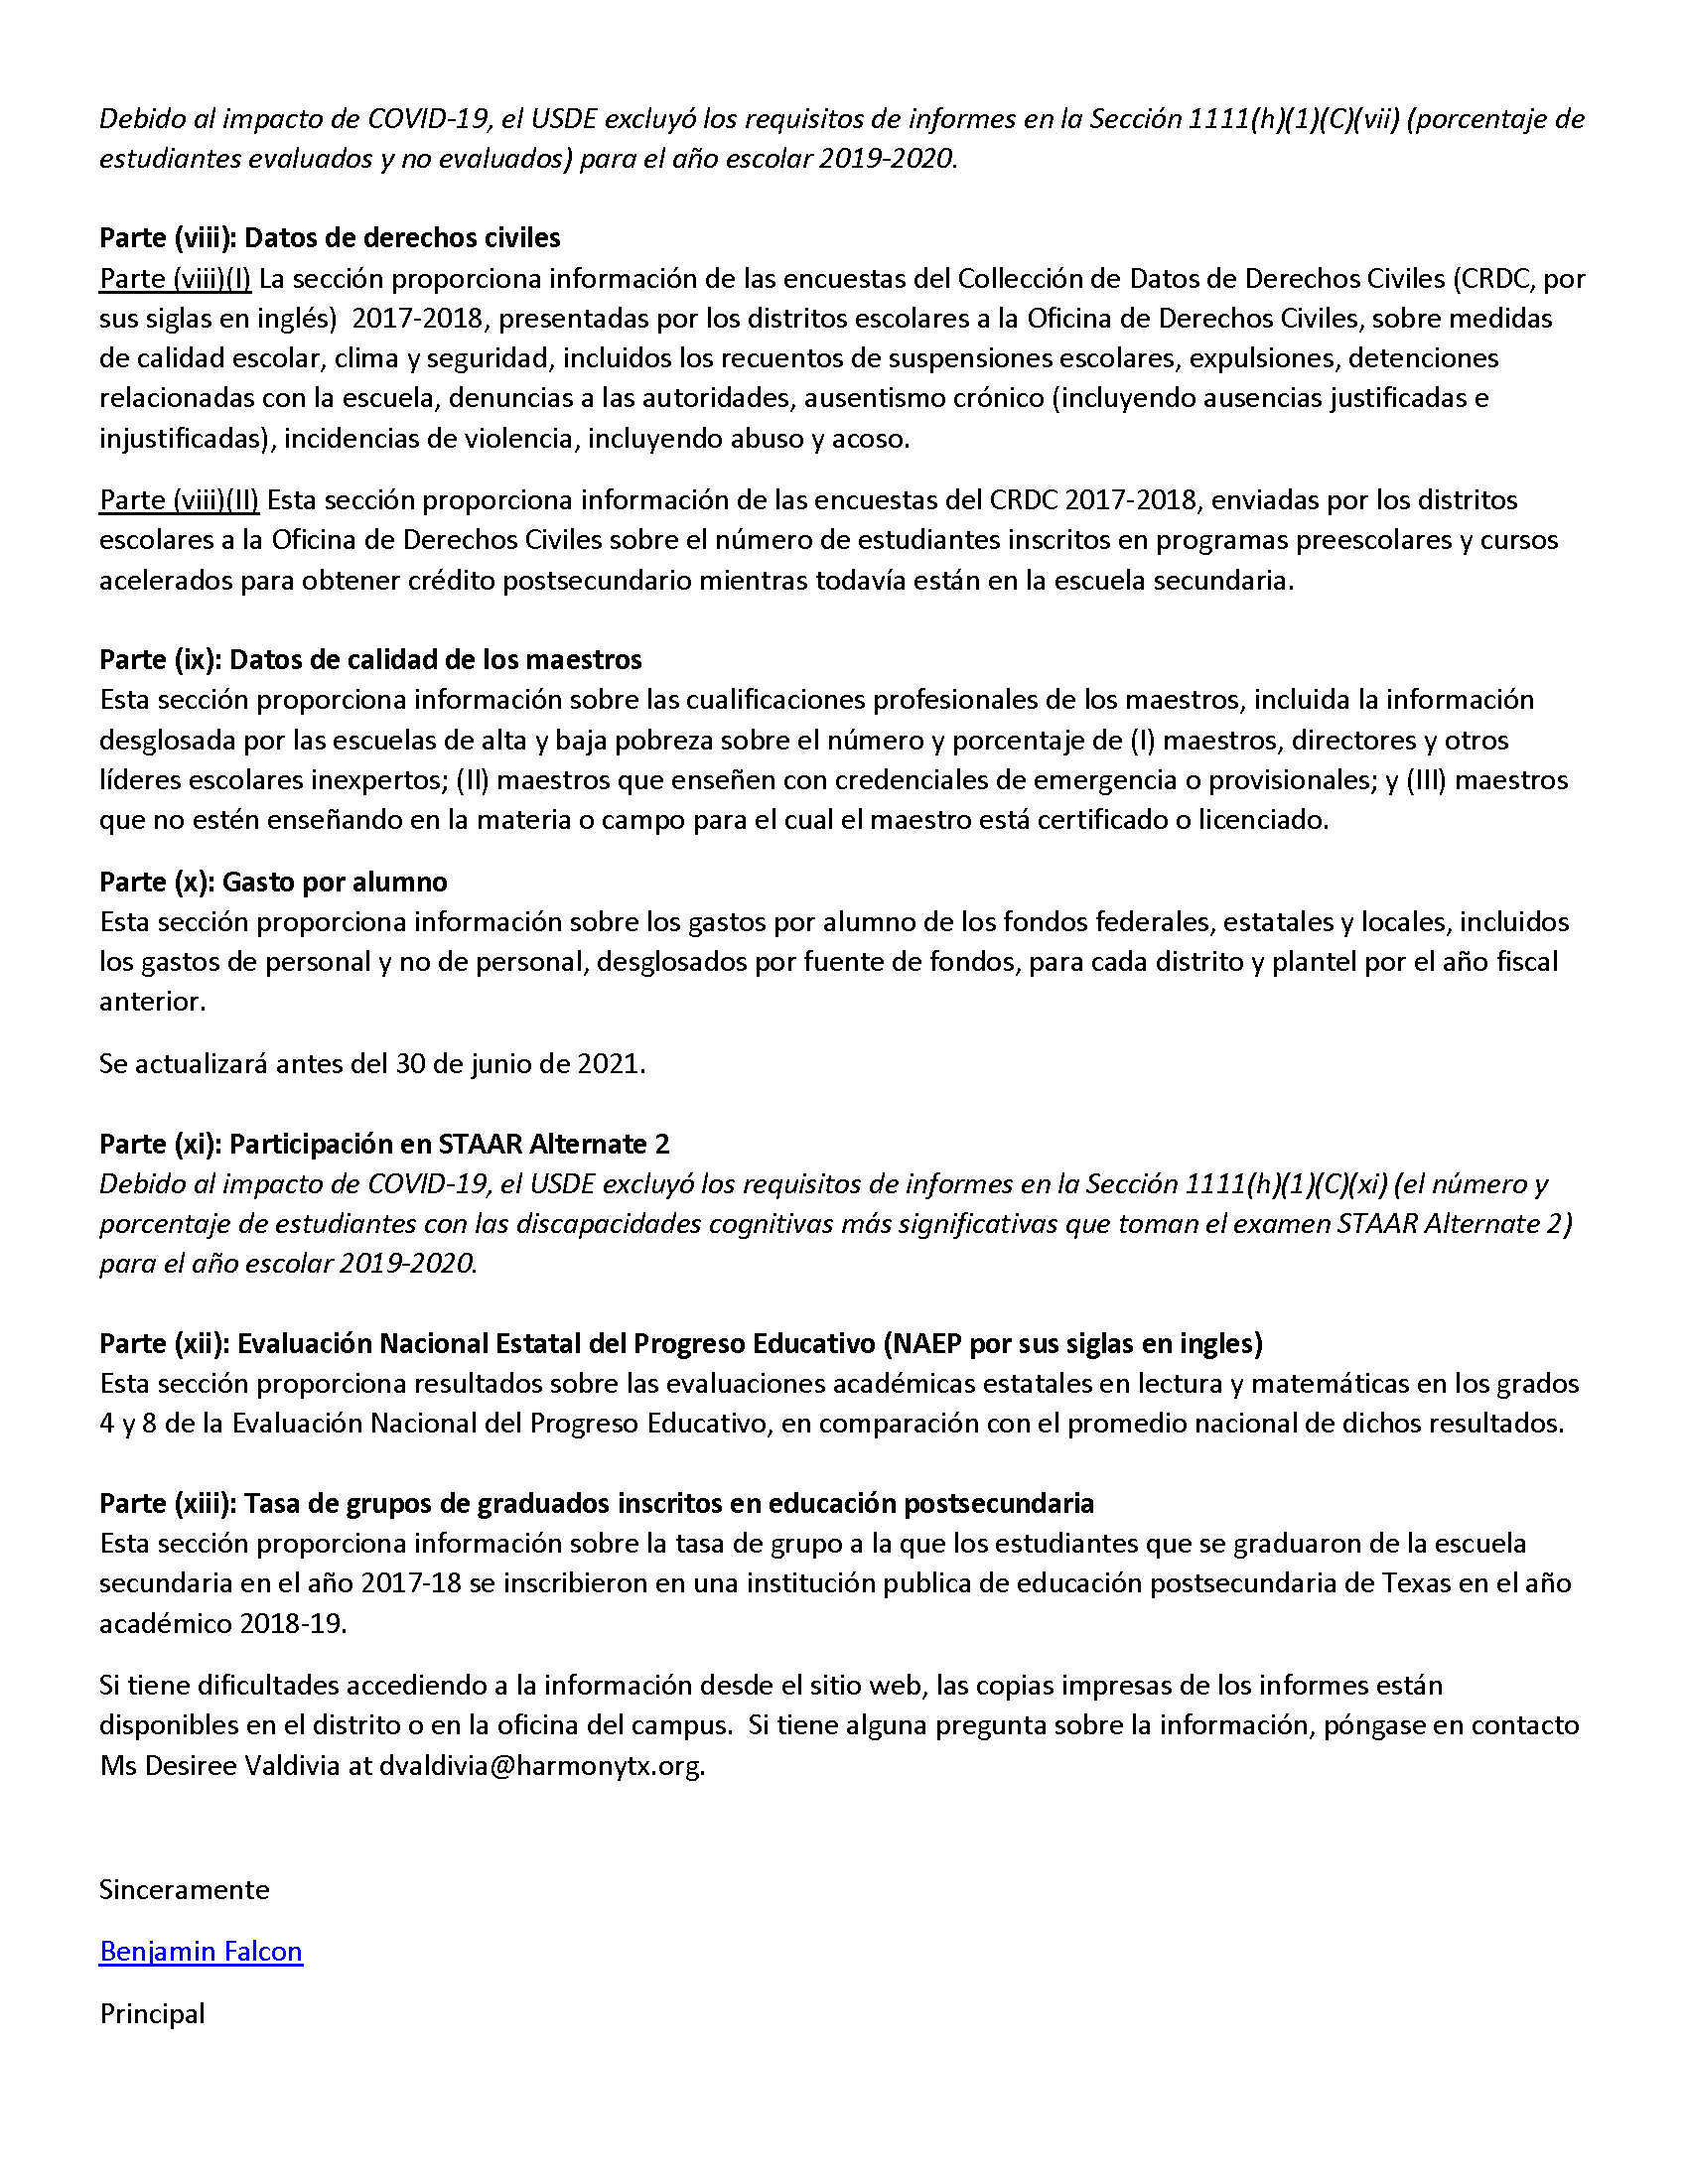 An image of the HSI Parent Notification Letter Federal Report Card in Spanish